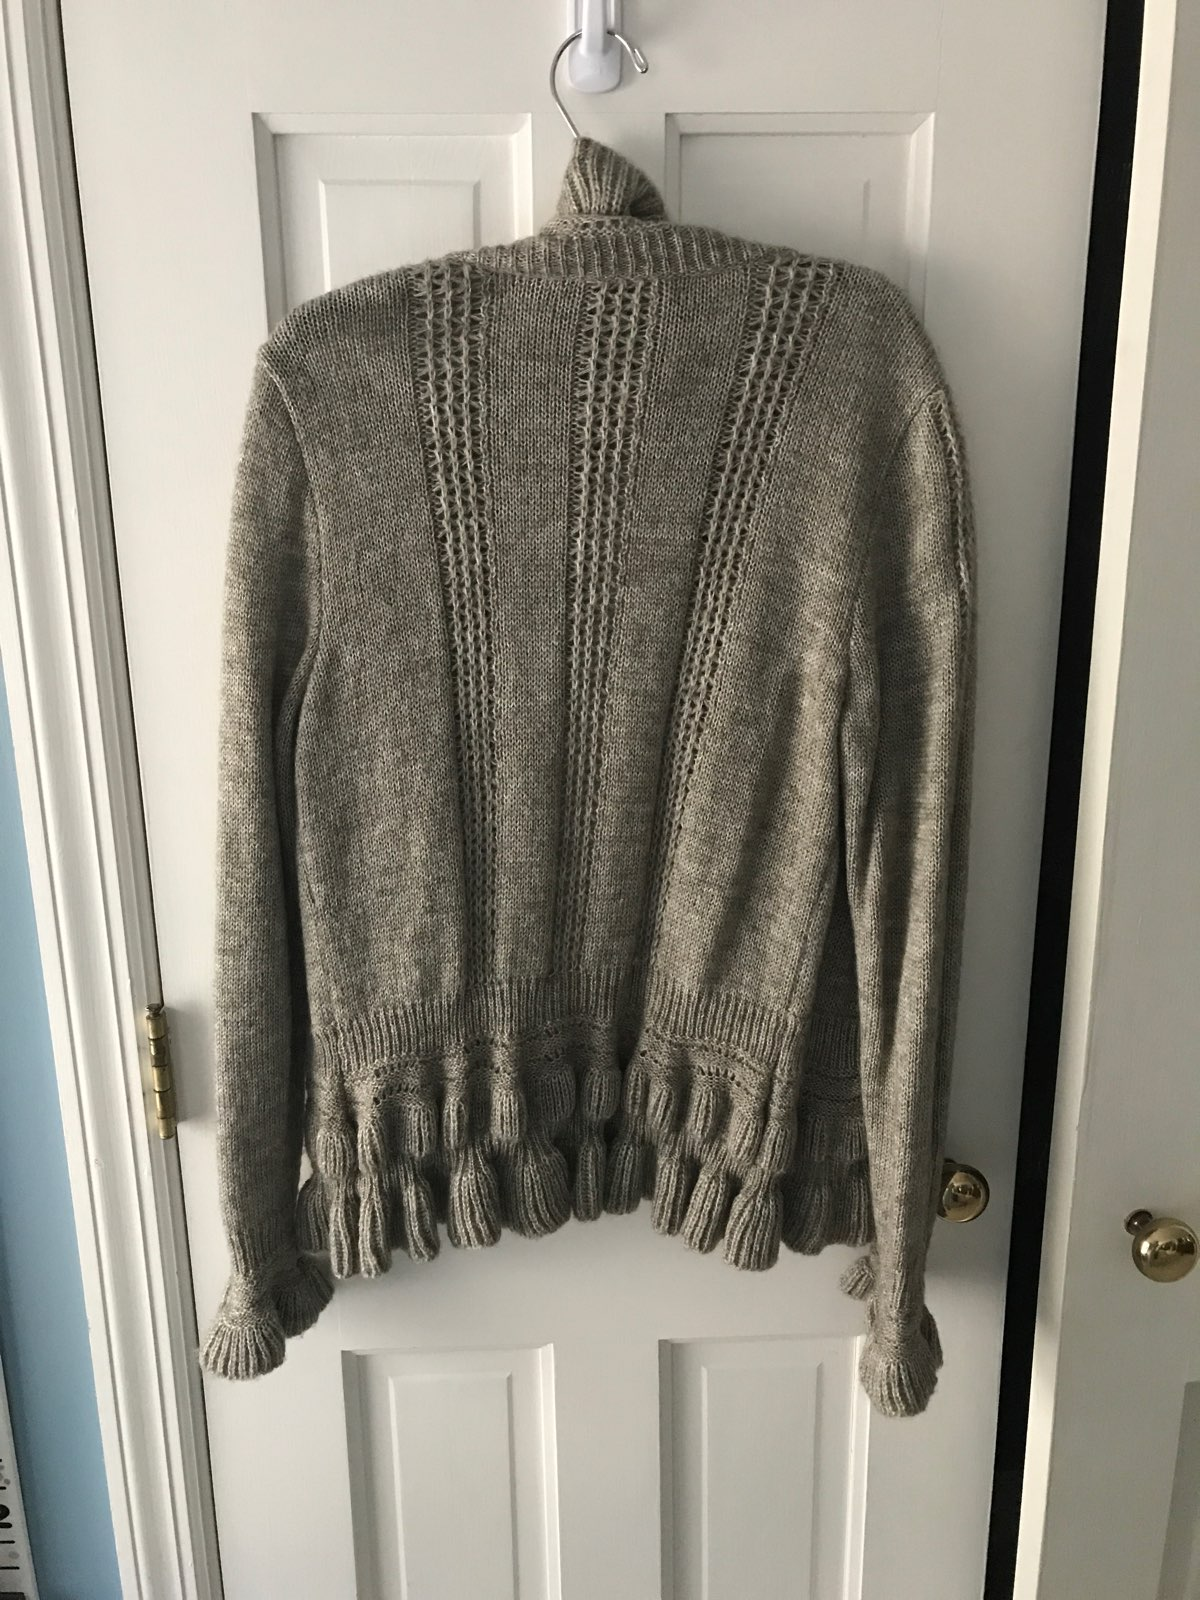 Heather Brown Sweater - Mercari: BUY & SELL THINGS YOU LOVE